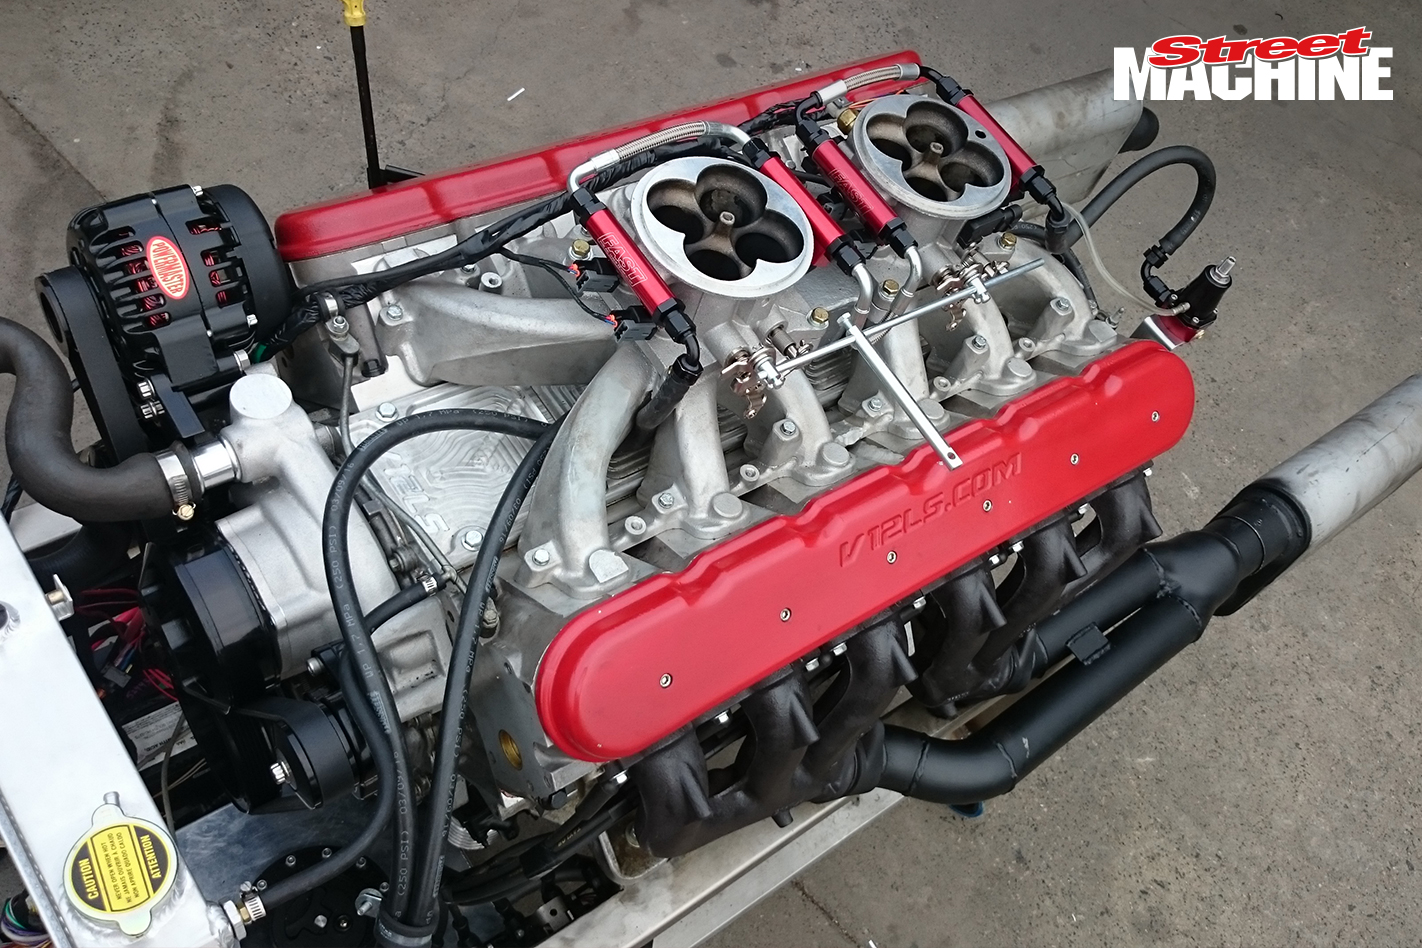 THEY BUILT A COOL V12 USING TWO LS1 ENGINES - VIDEO